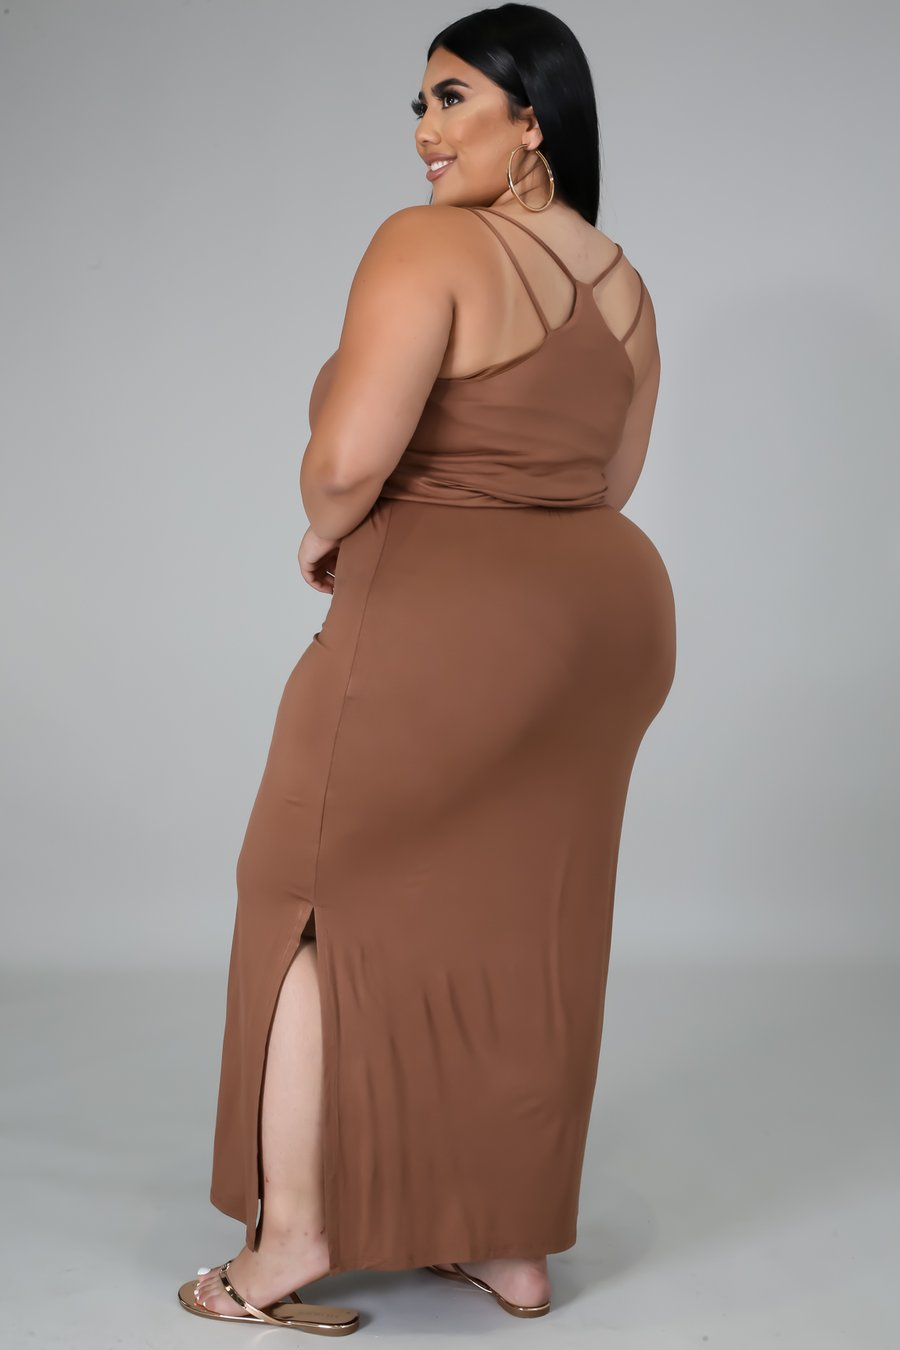 Jersey Lounging Plus Size Dress